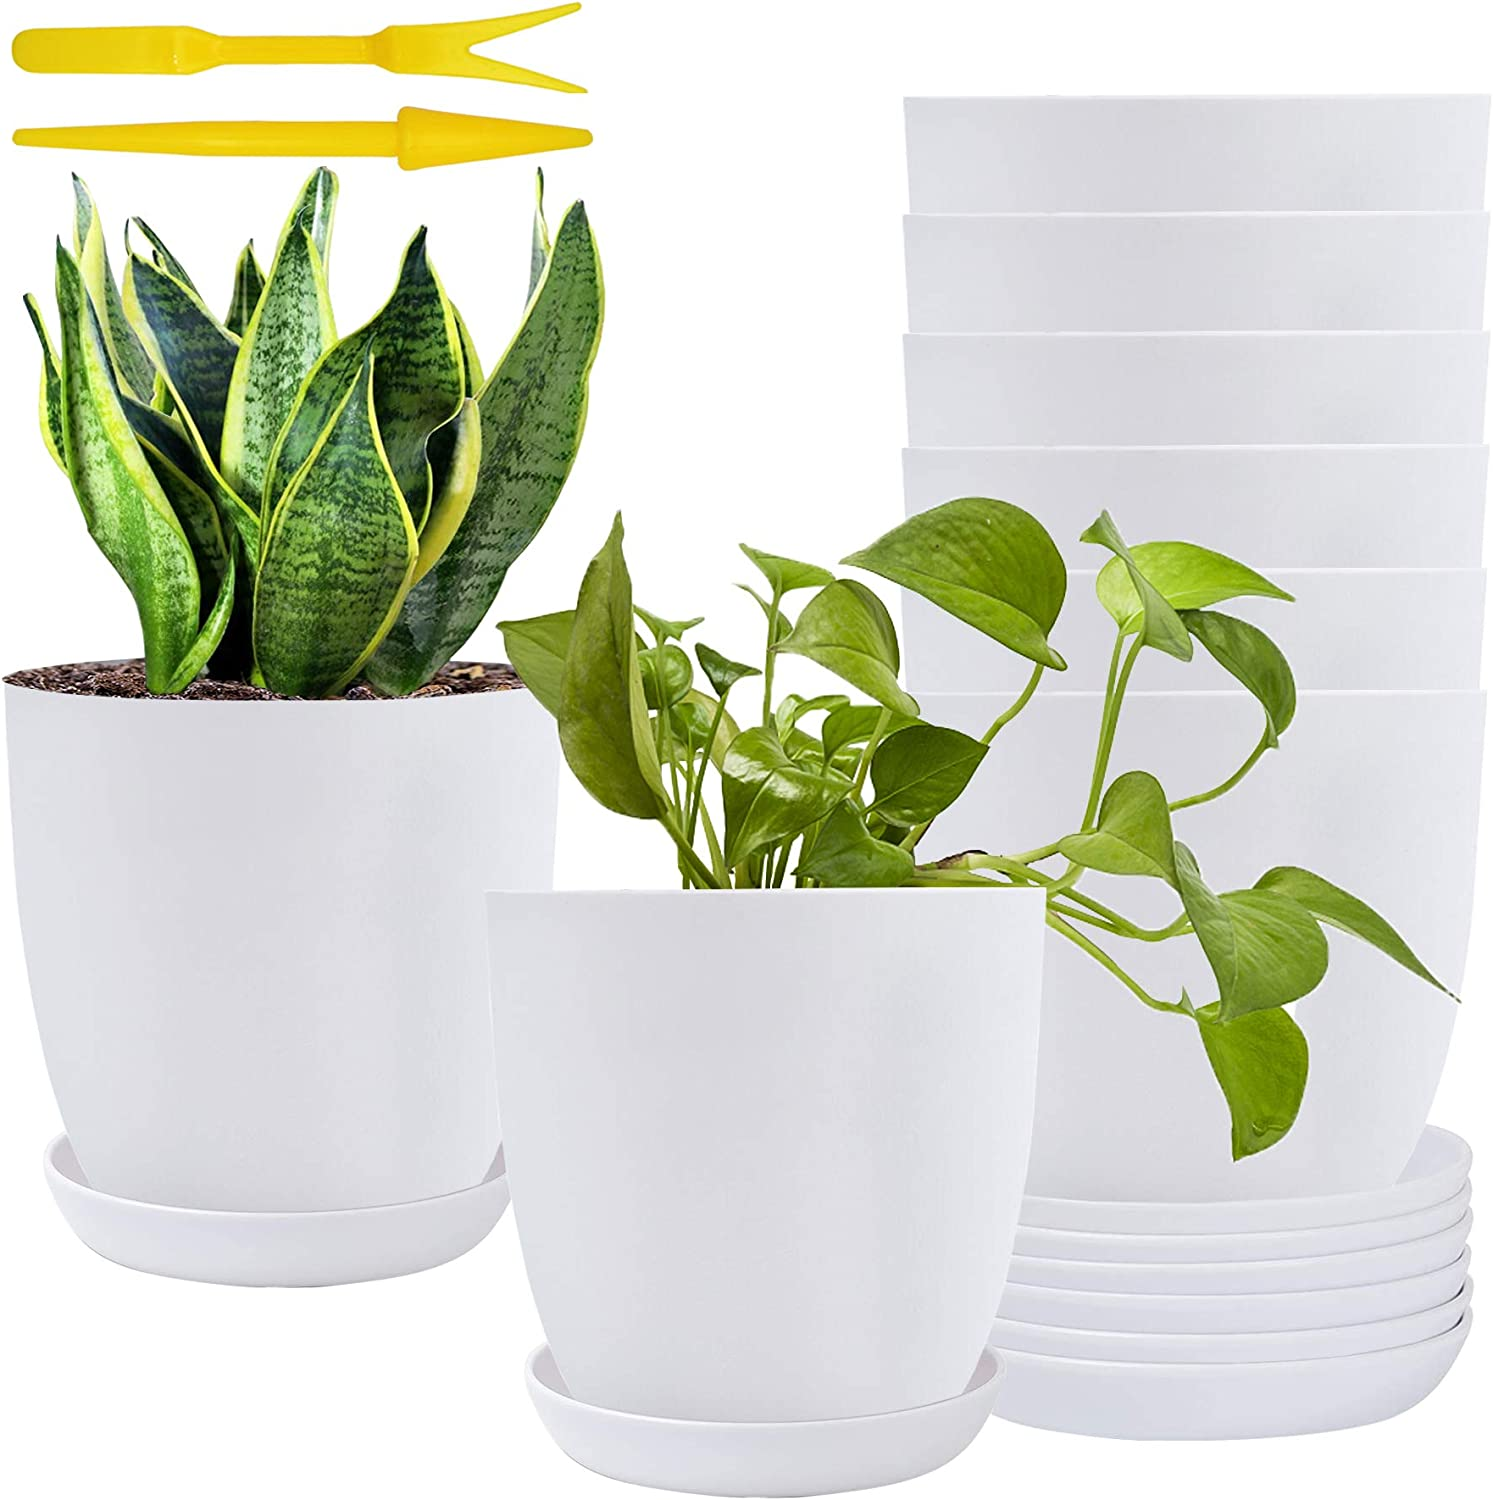 6Inch Plastic Planters White Modern Gardening Plant Pots Matte Indoor Planter Pot for Succulent Flowers Indoor Plants Cactus Herbs Yards Garden Office Decoration with Saucer Drainage Holes Set of 8